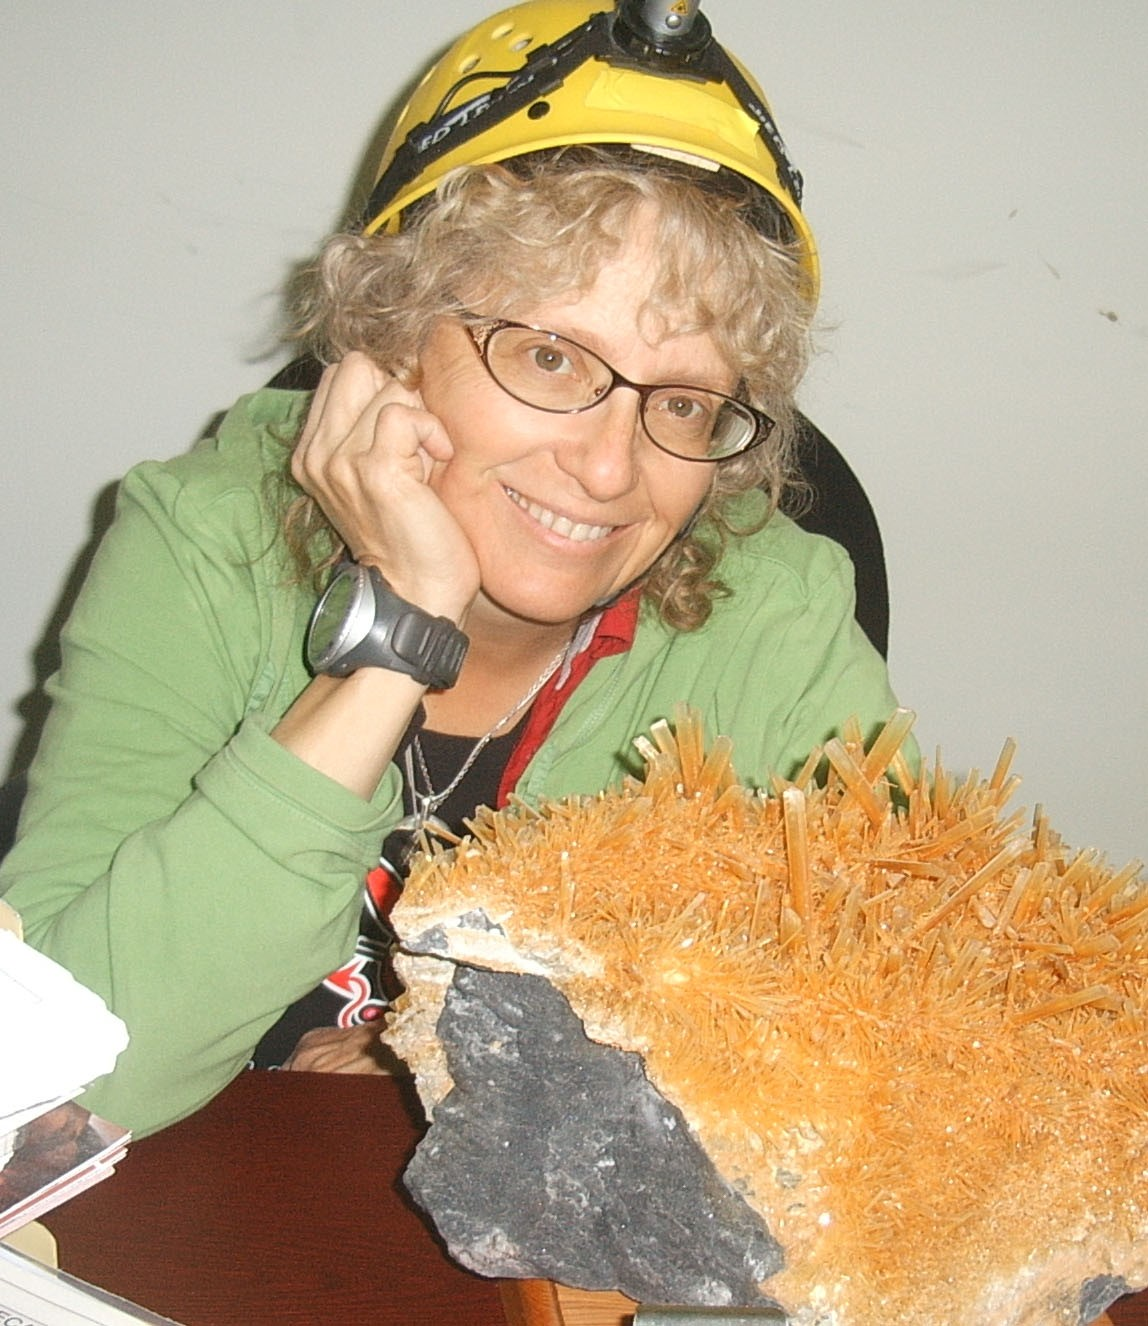 Penelope 'Penny' Boston poses with Naica Cave gypsum crystals. Image credit: Dr. Tom Kieft, New Mexico Tech